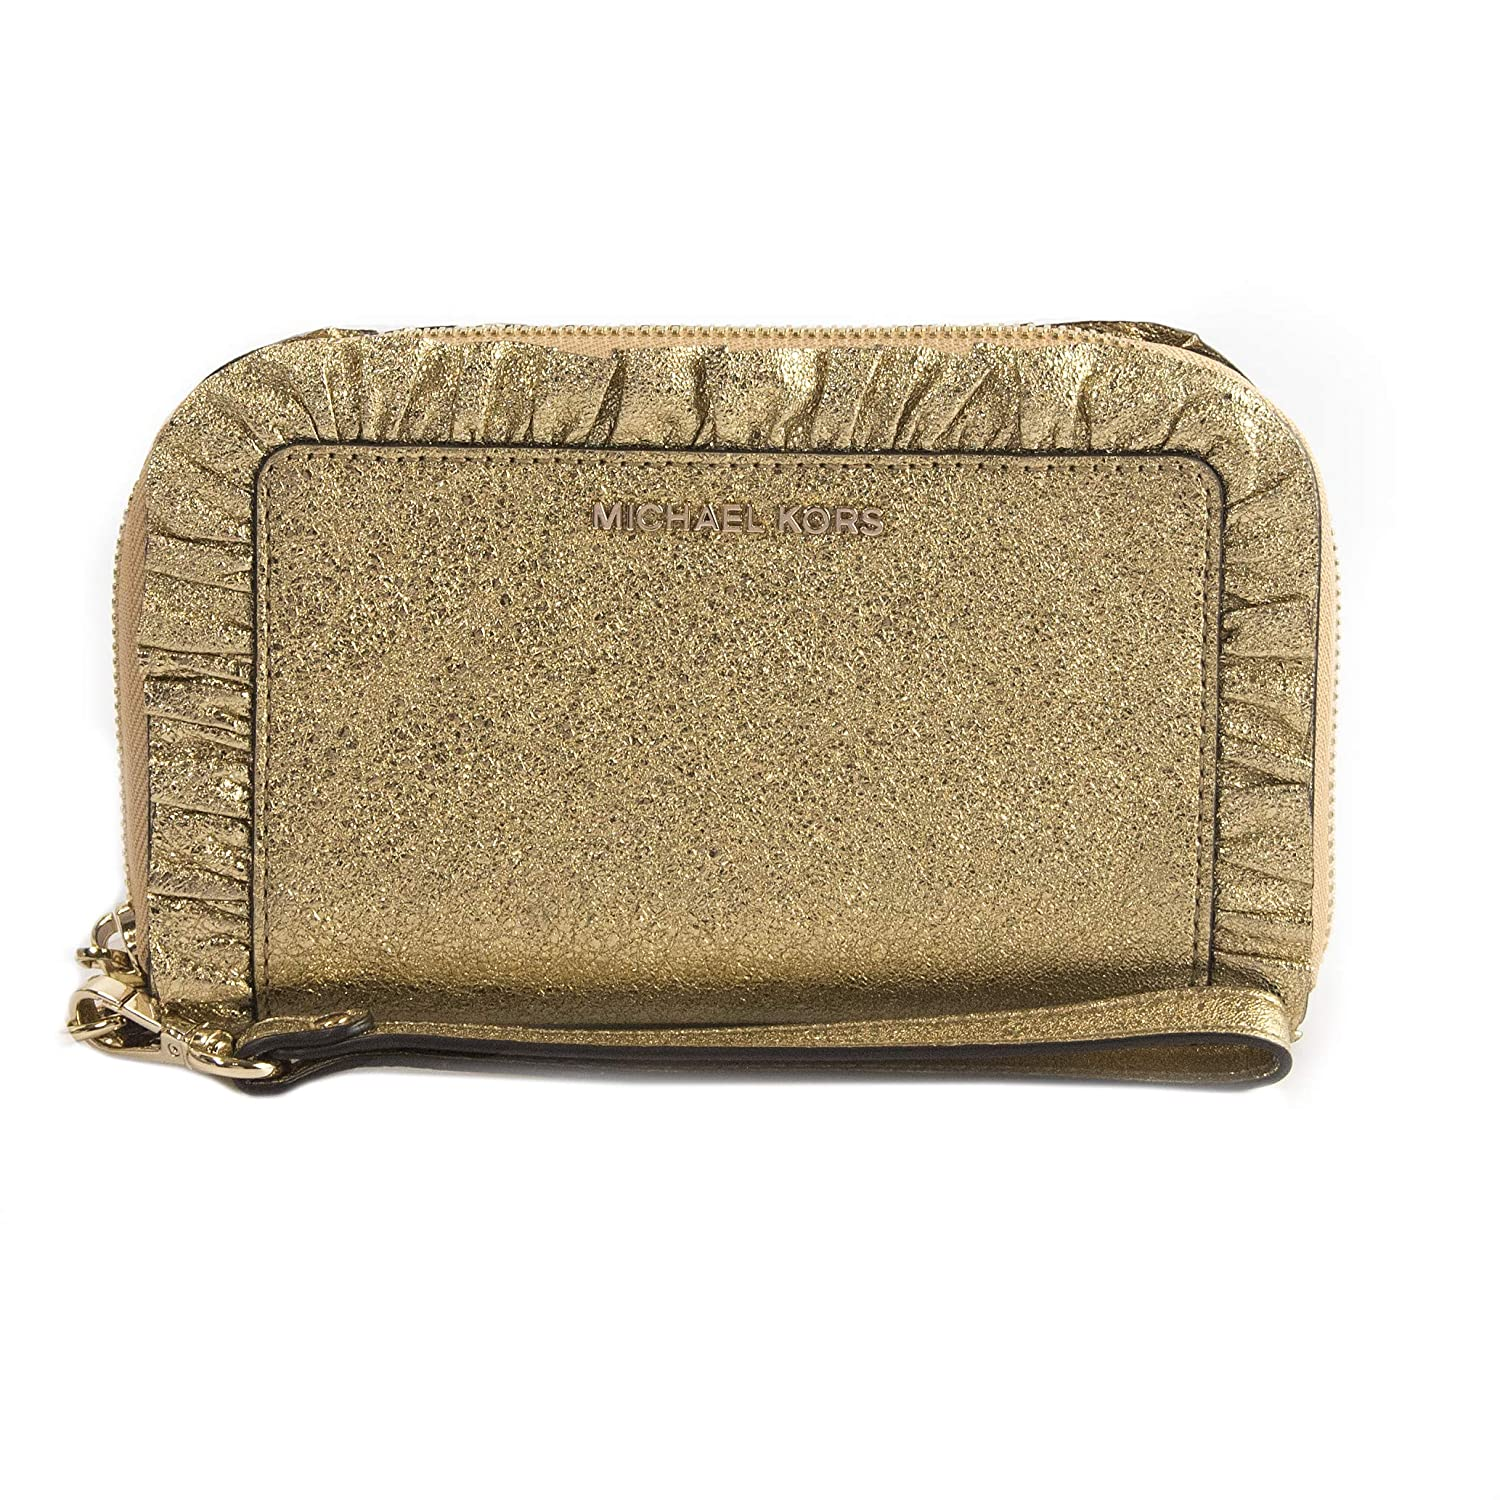 35e227f44ab17 Amazon.com  Michael Kors Jet Set Ruffled Gold Metallic Leather Phone  Wristlet Wallet  DesignHer Boutique